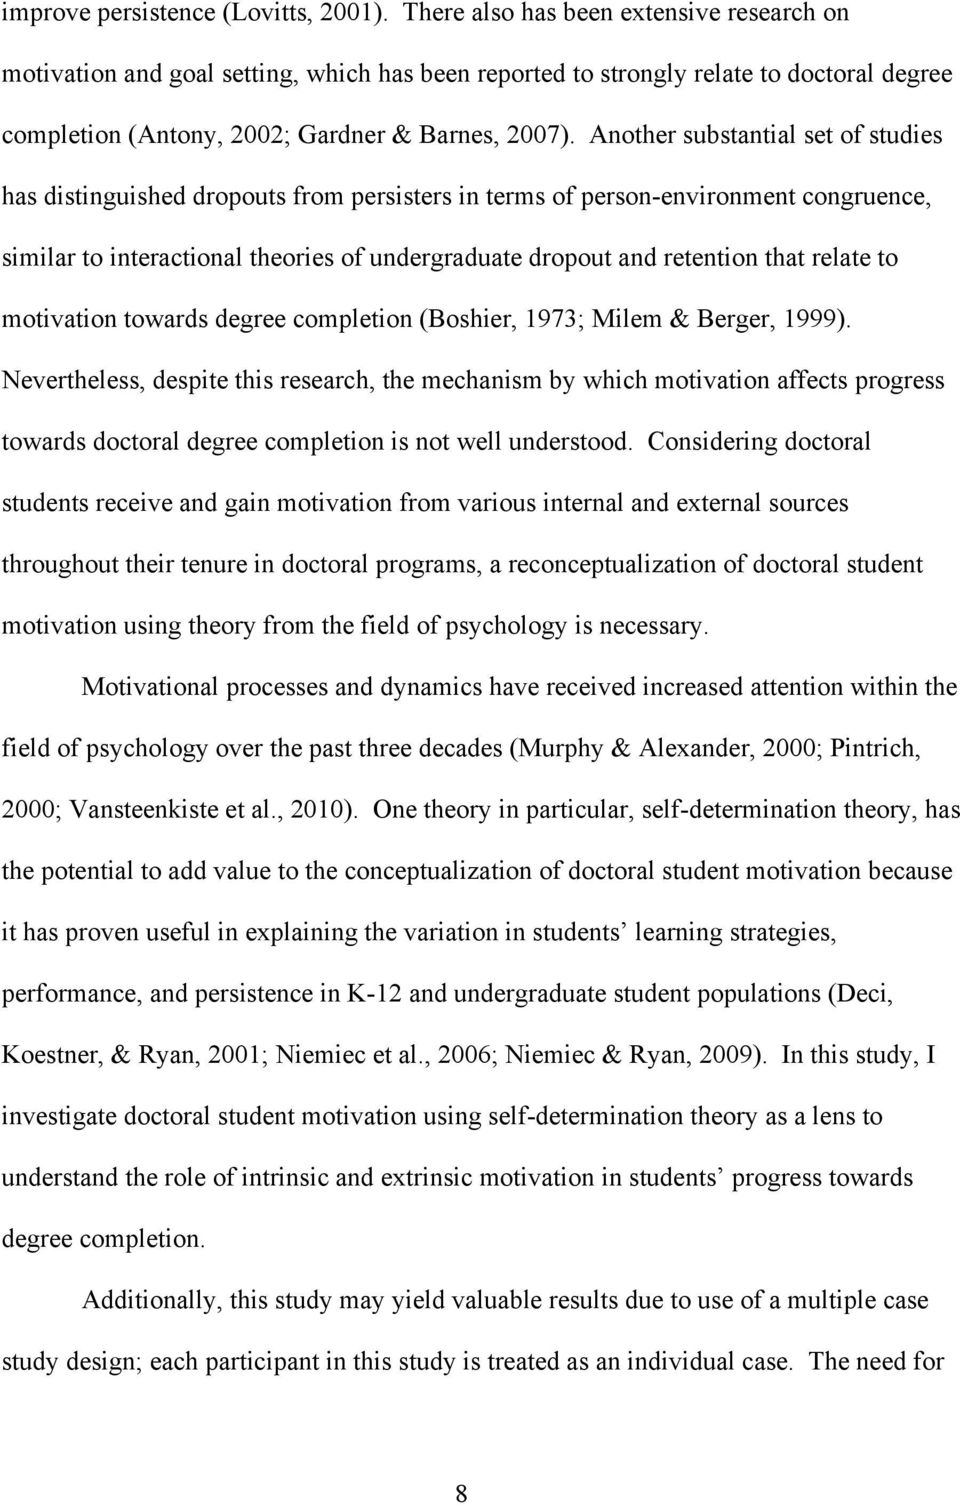 Another substantial set of studies has distinguished dropouts from persisters in terms of person-environment congruence, similar to interactional theories of undergraduate dropout and retention that